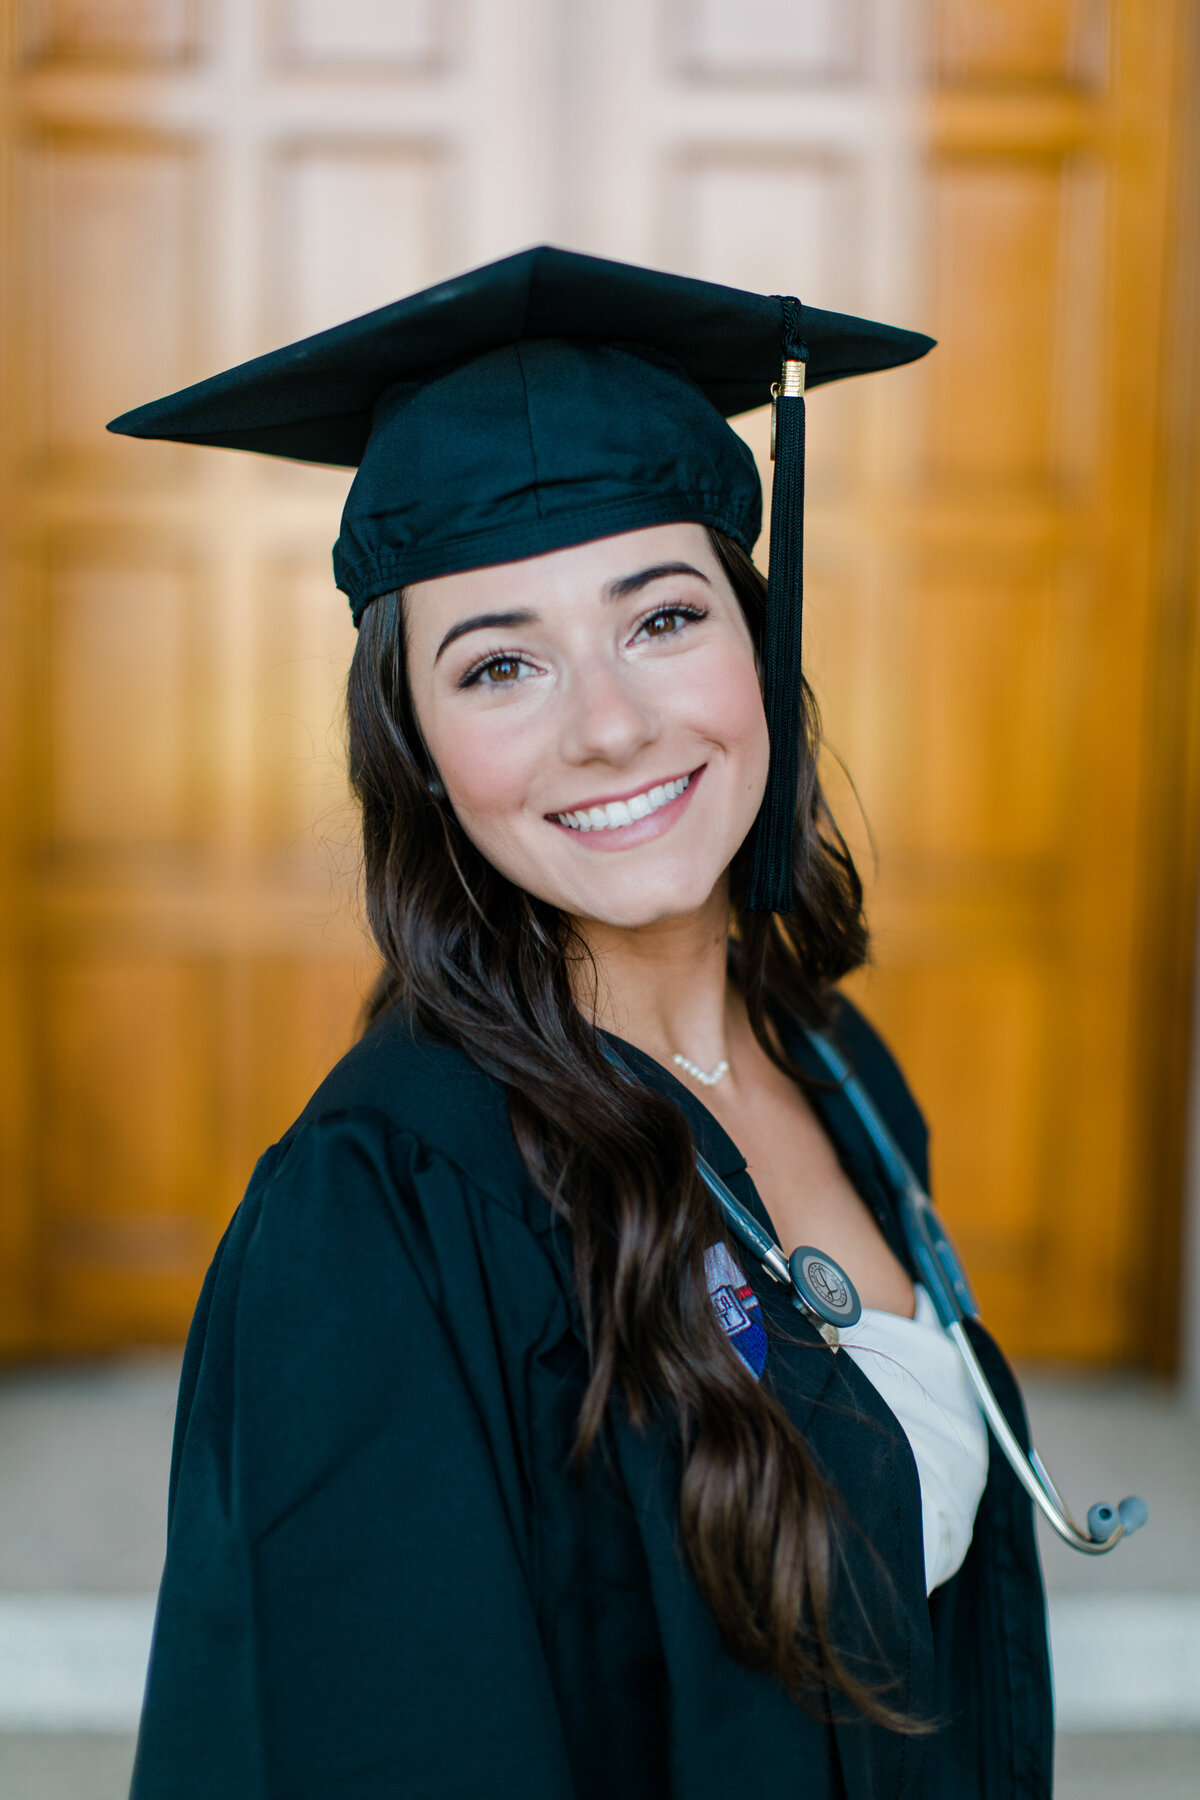 Catholic_University_CUA_Senior_Graduation_Session_2020_Angelika_Johns_Photography-4286